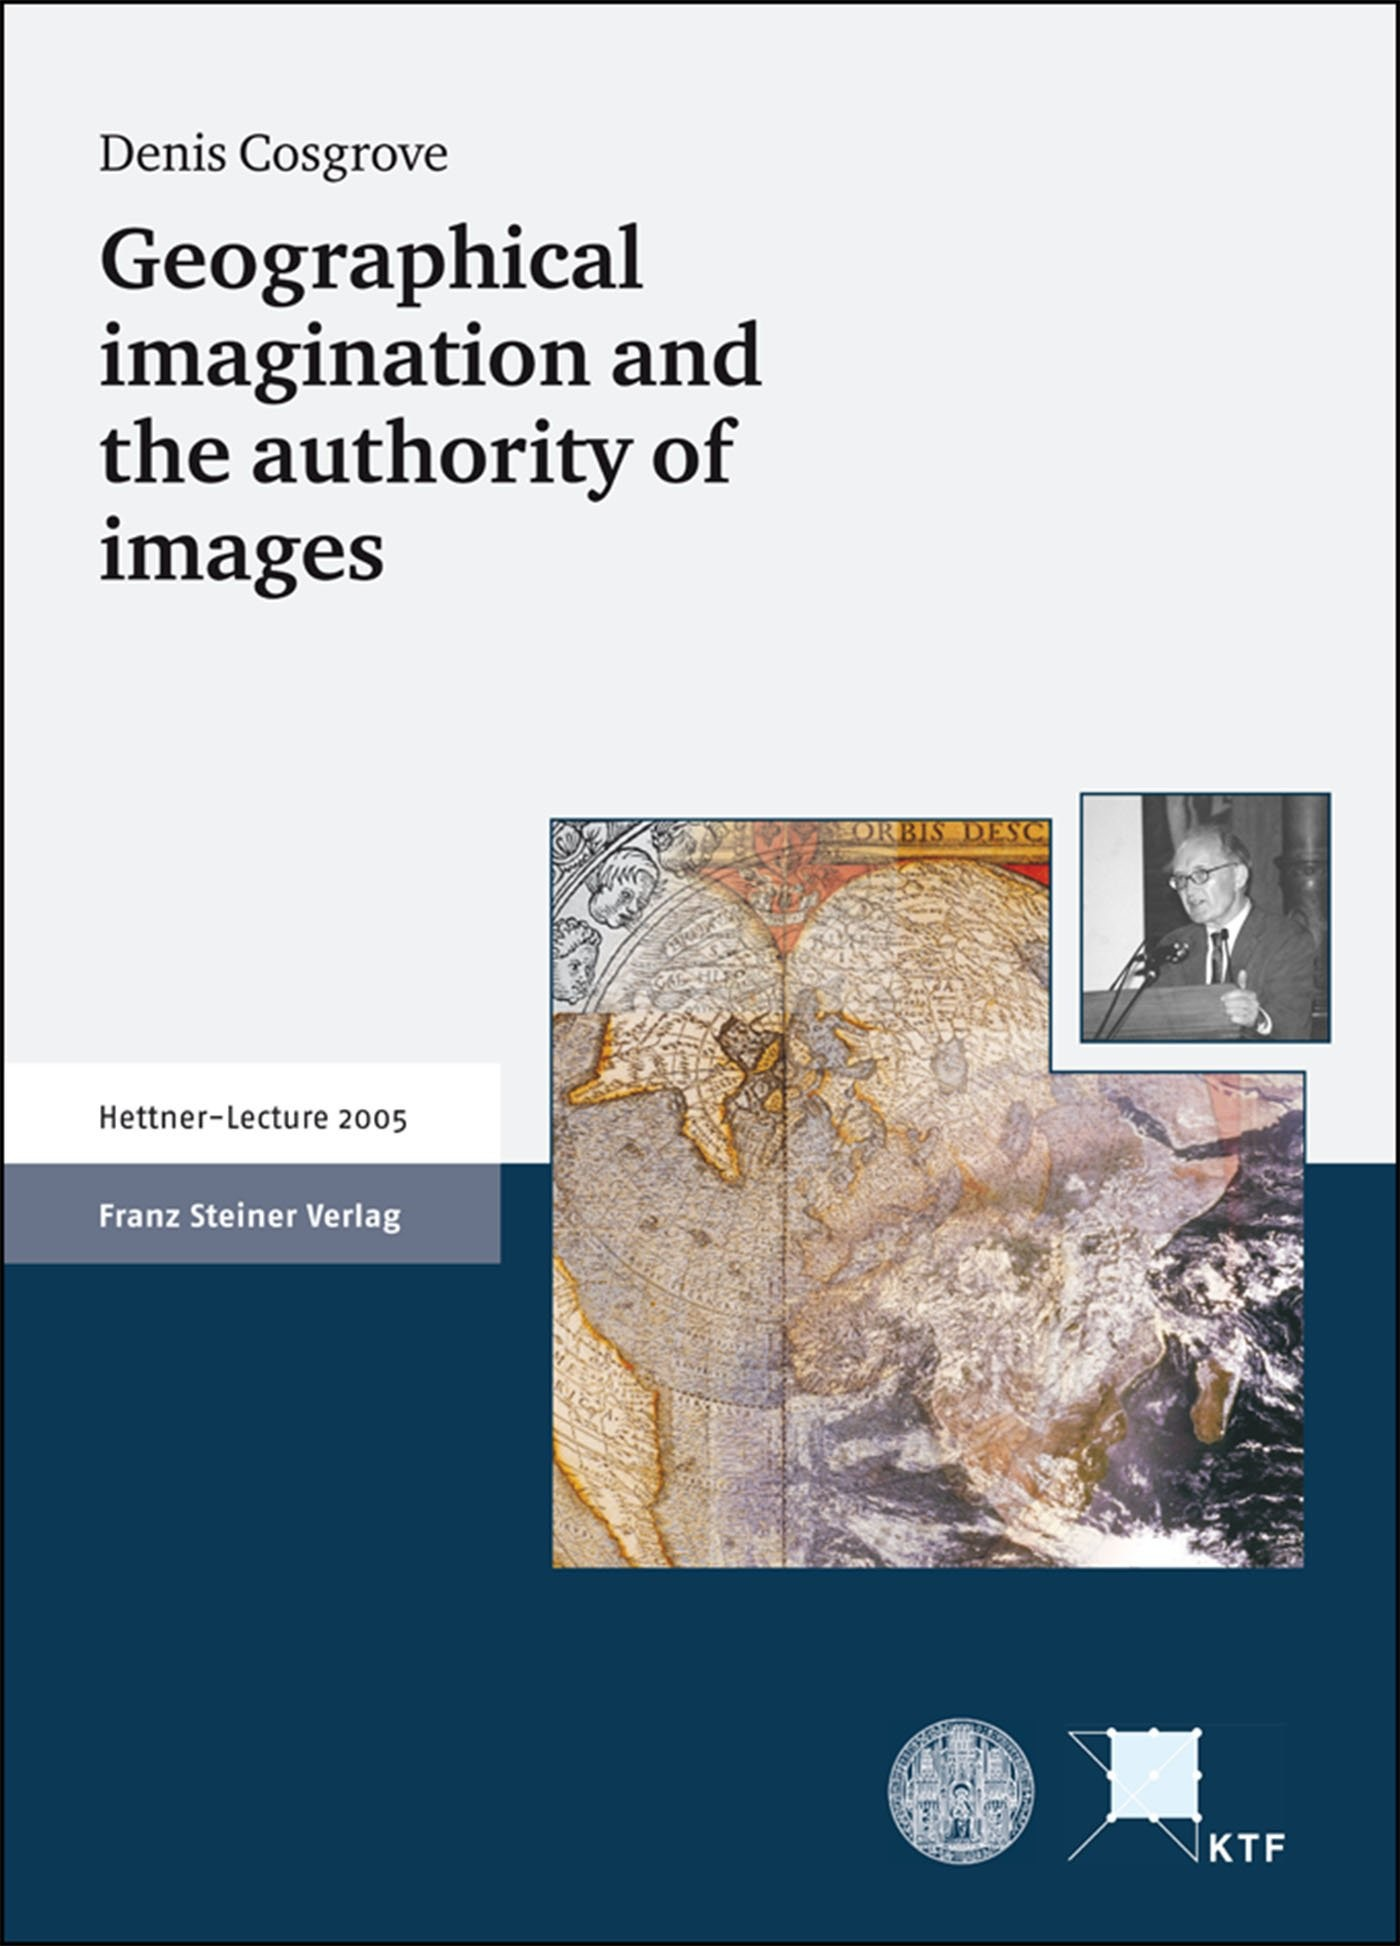 Abbildung von Cosgrove | Geographical imagination and the authority of images | 2006